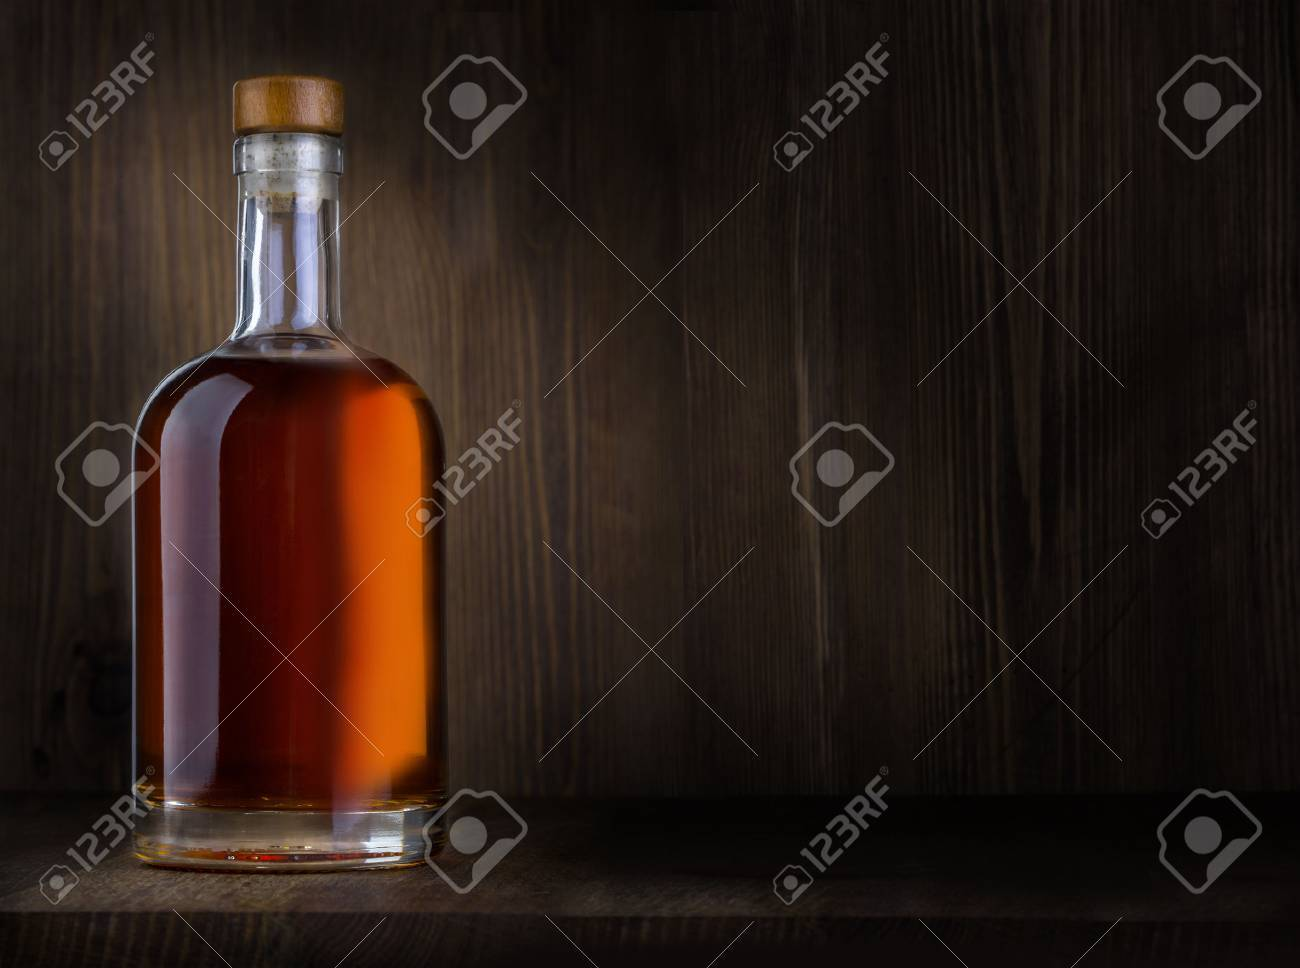 Bottle of whiskey on a wooden background with copy space - 54425522